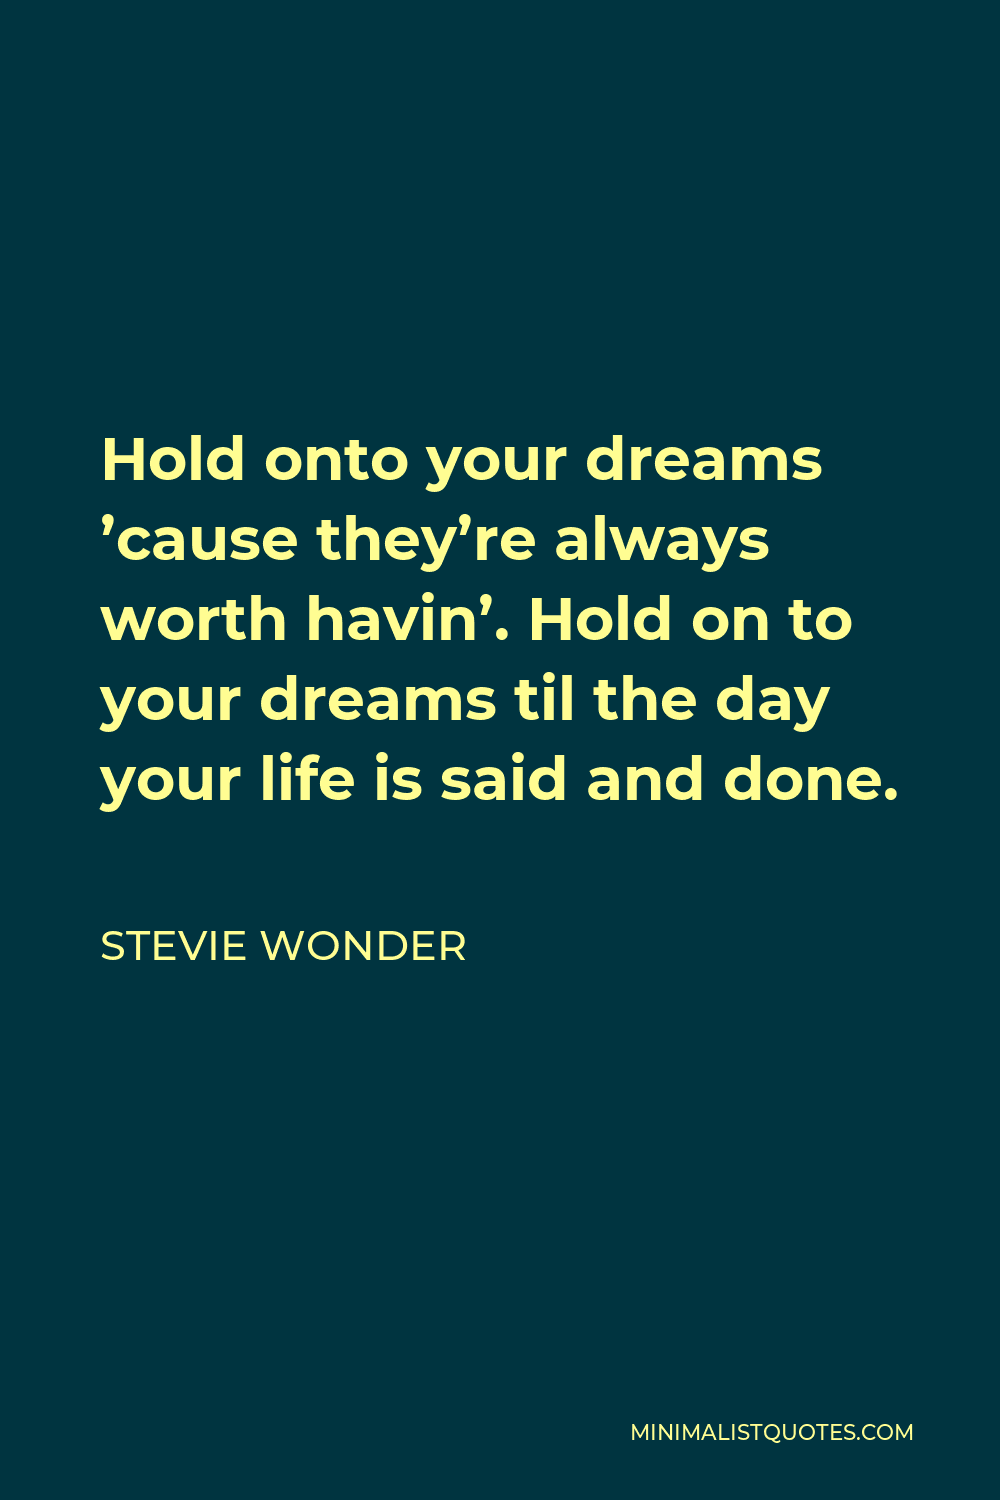 Stevie Wonder Quote - Hold onto your dreams 'cause they're always worth havin'. Hold on to your dreams til the day your life is said and done.